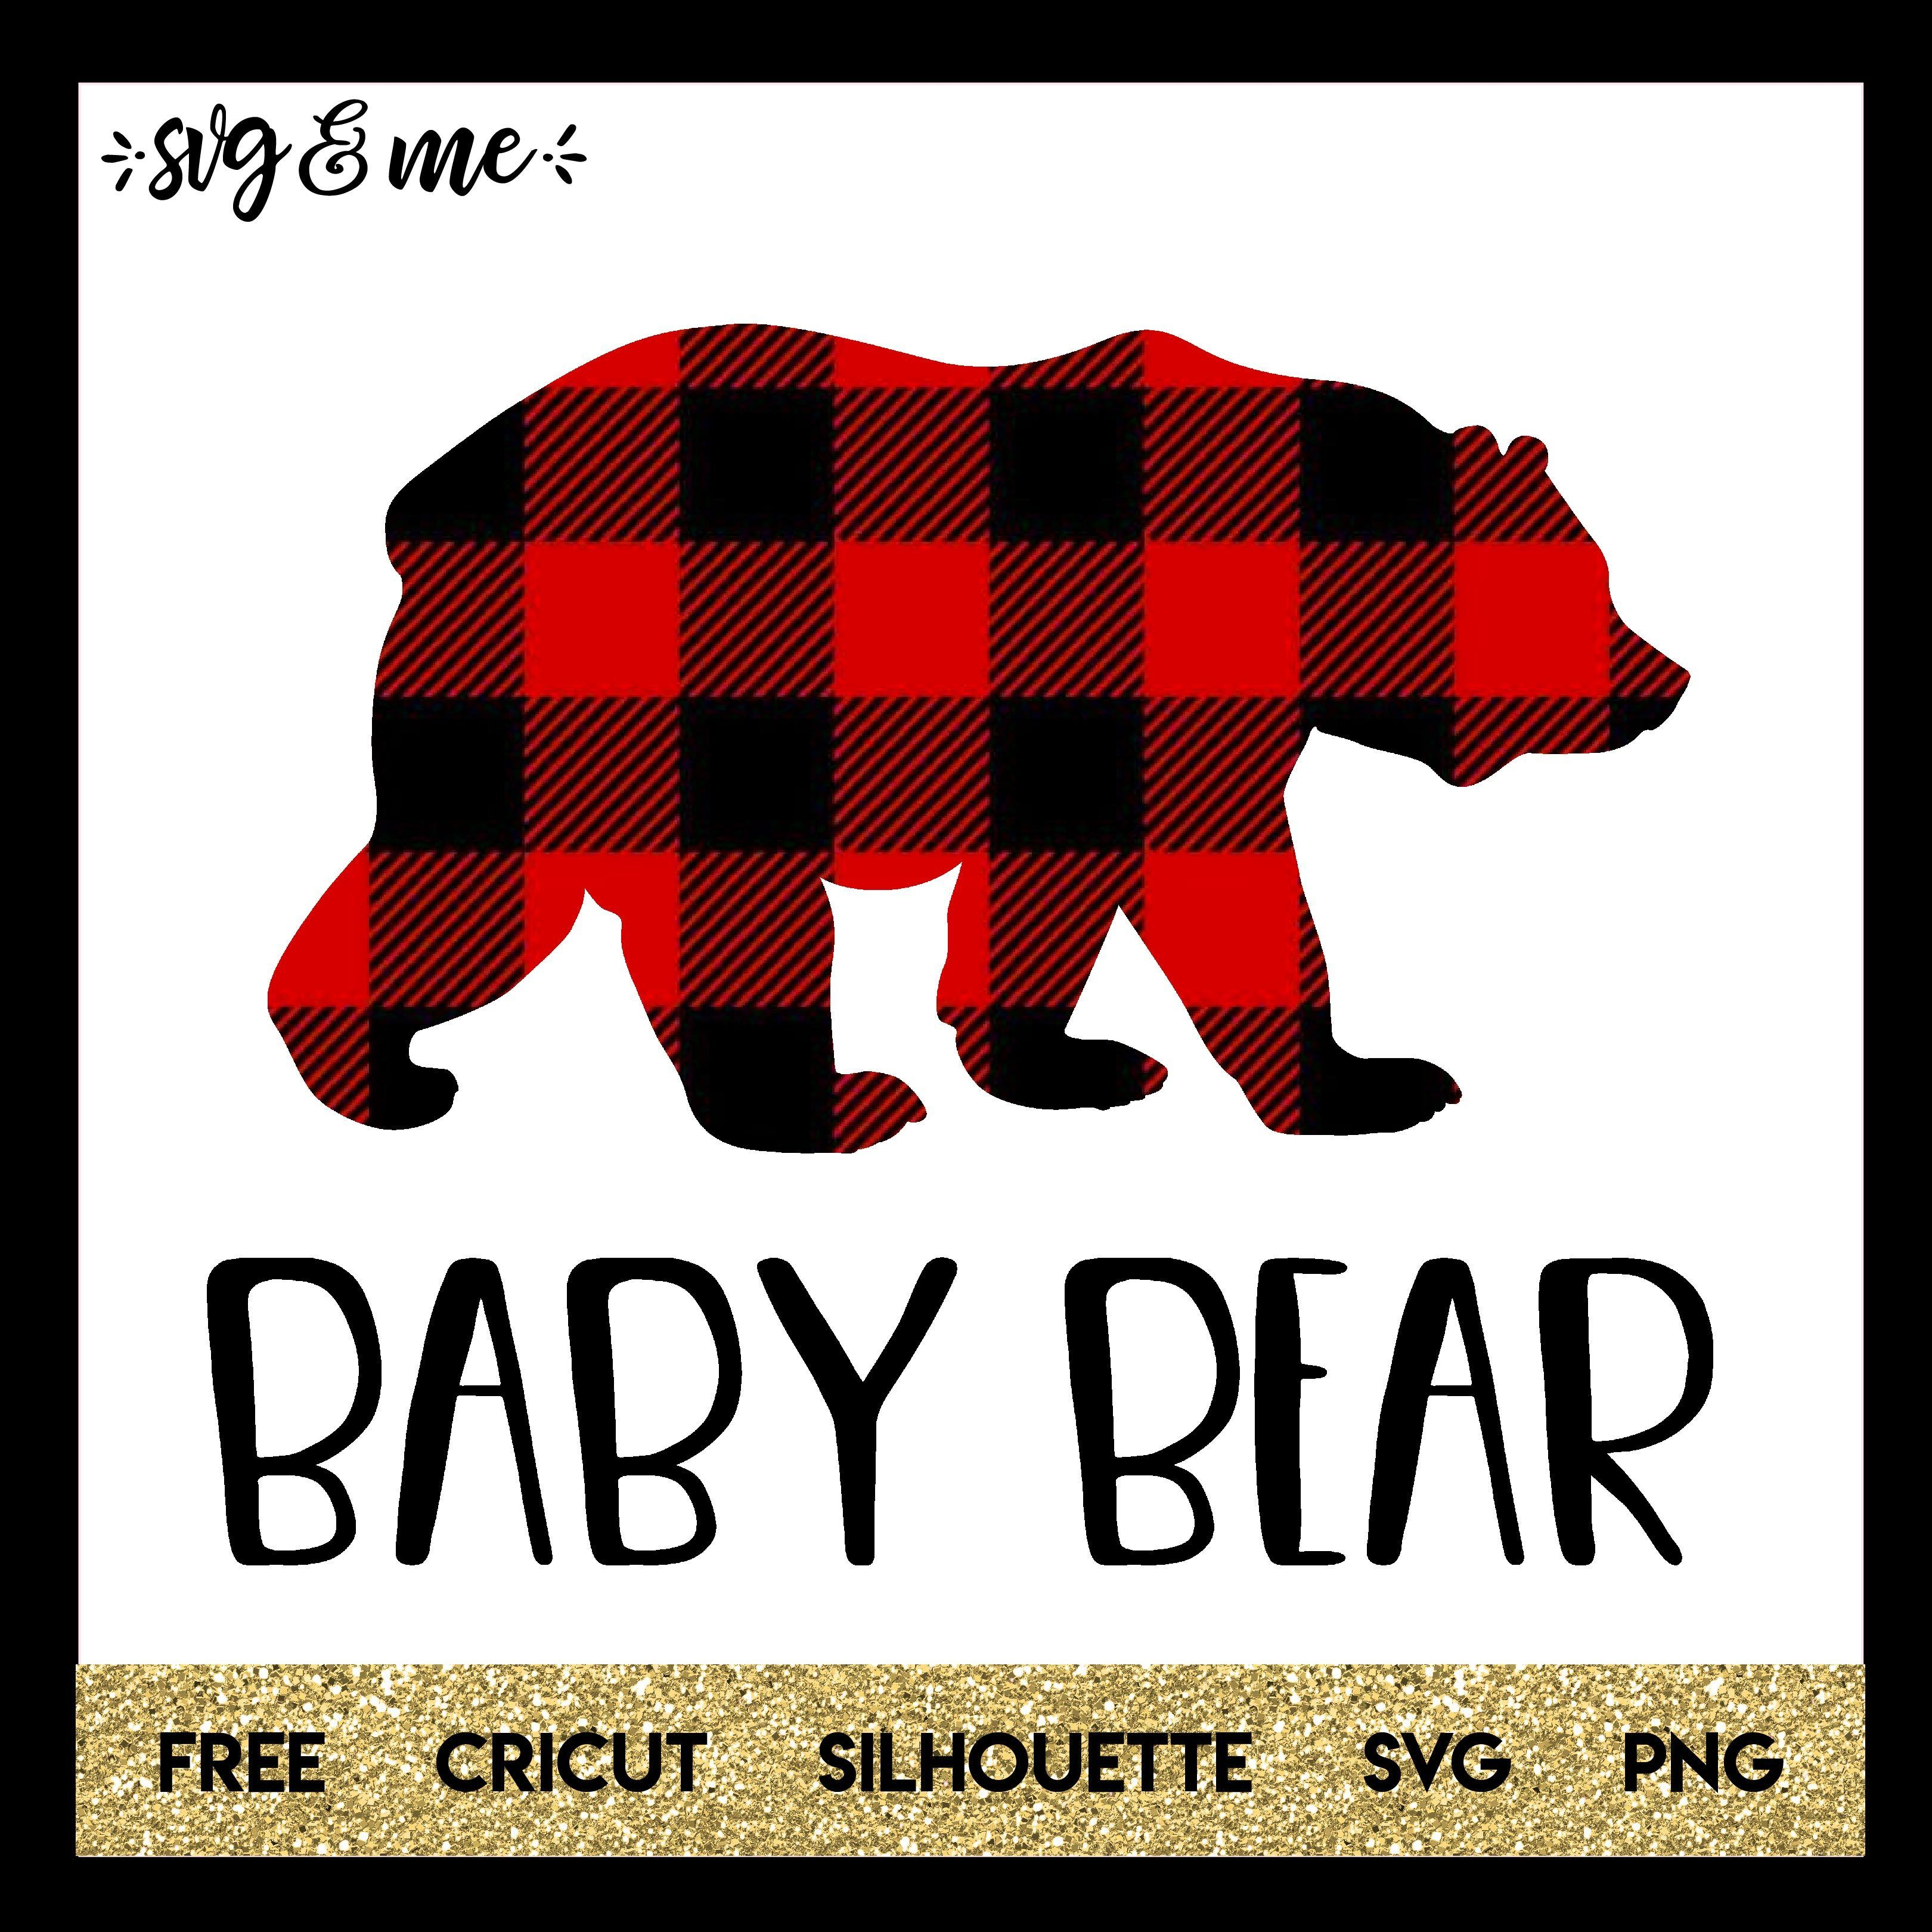 Baby Bear New baby products, Bear stencil, Free baby stuff